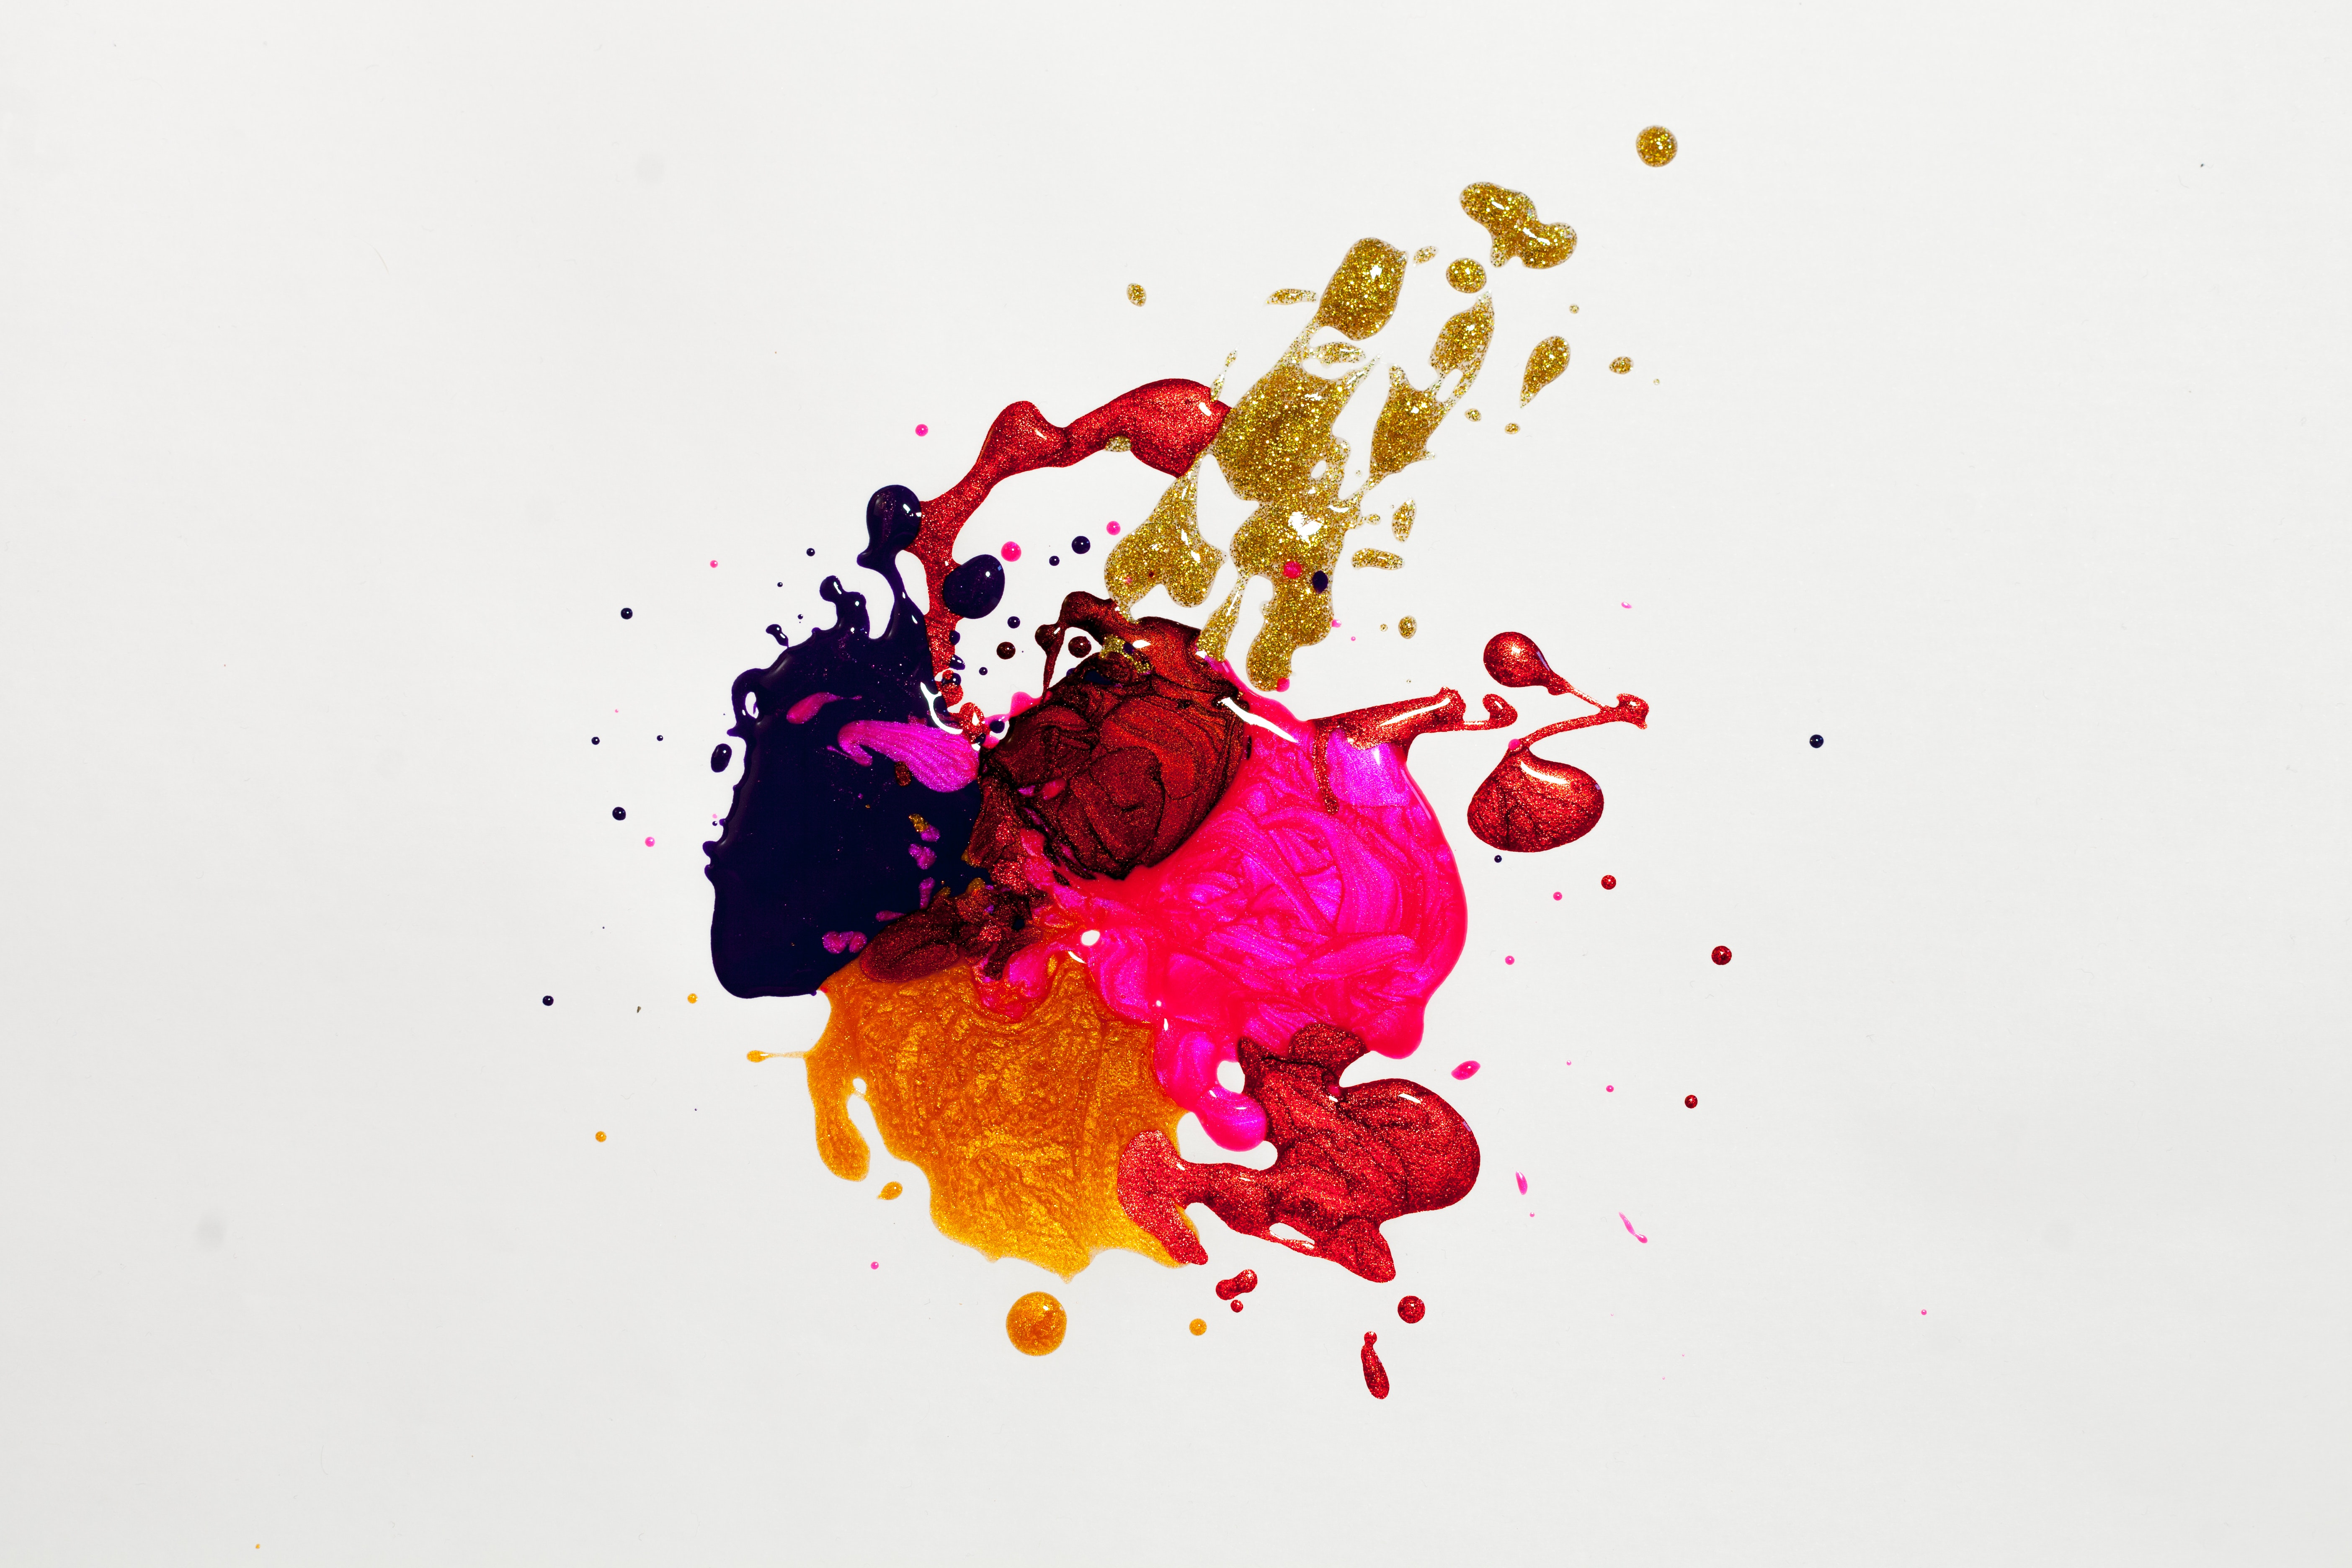 An image of an abstract painting - a centered paint splatter in various colors